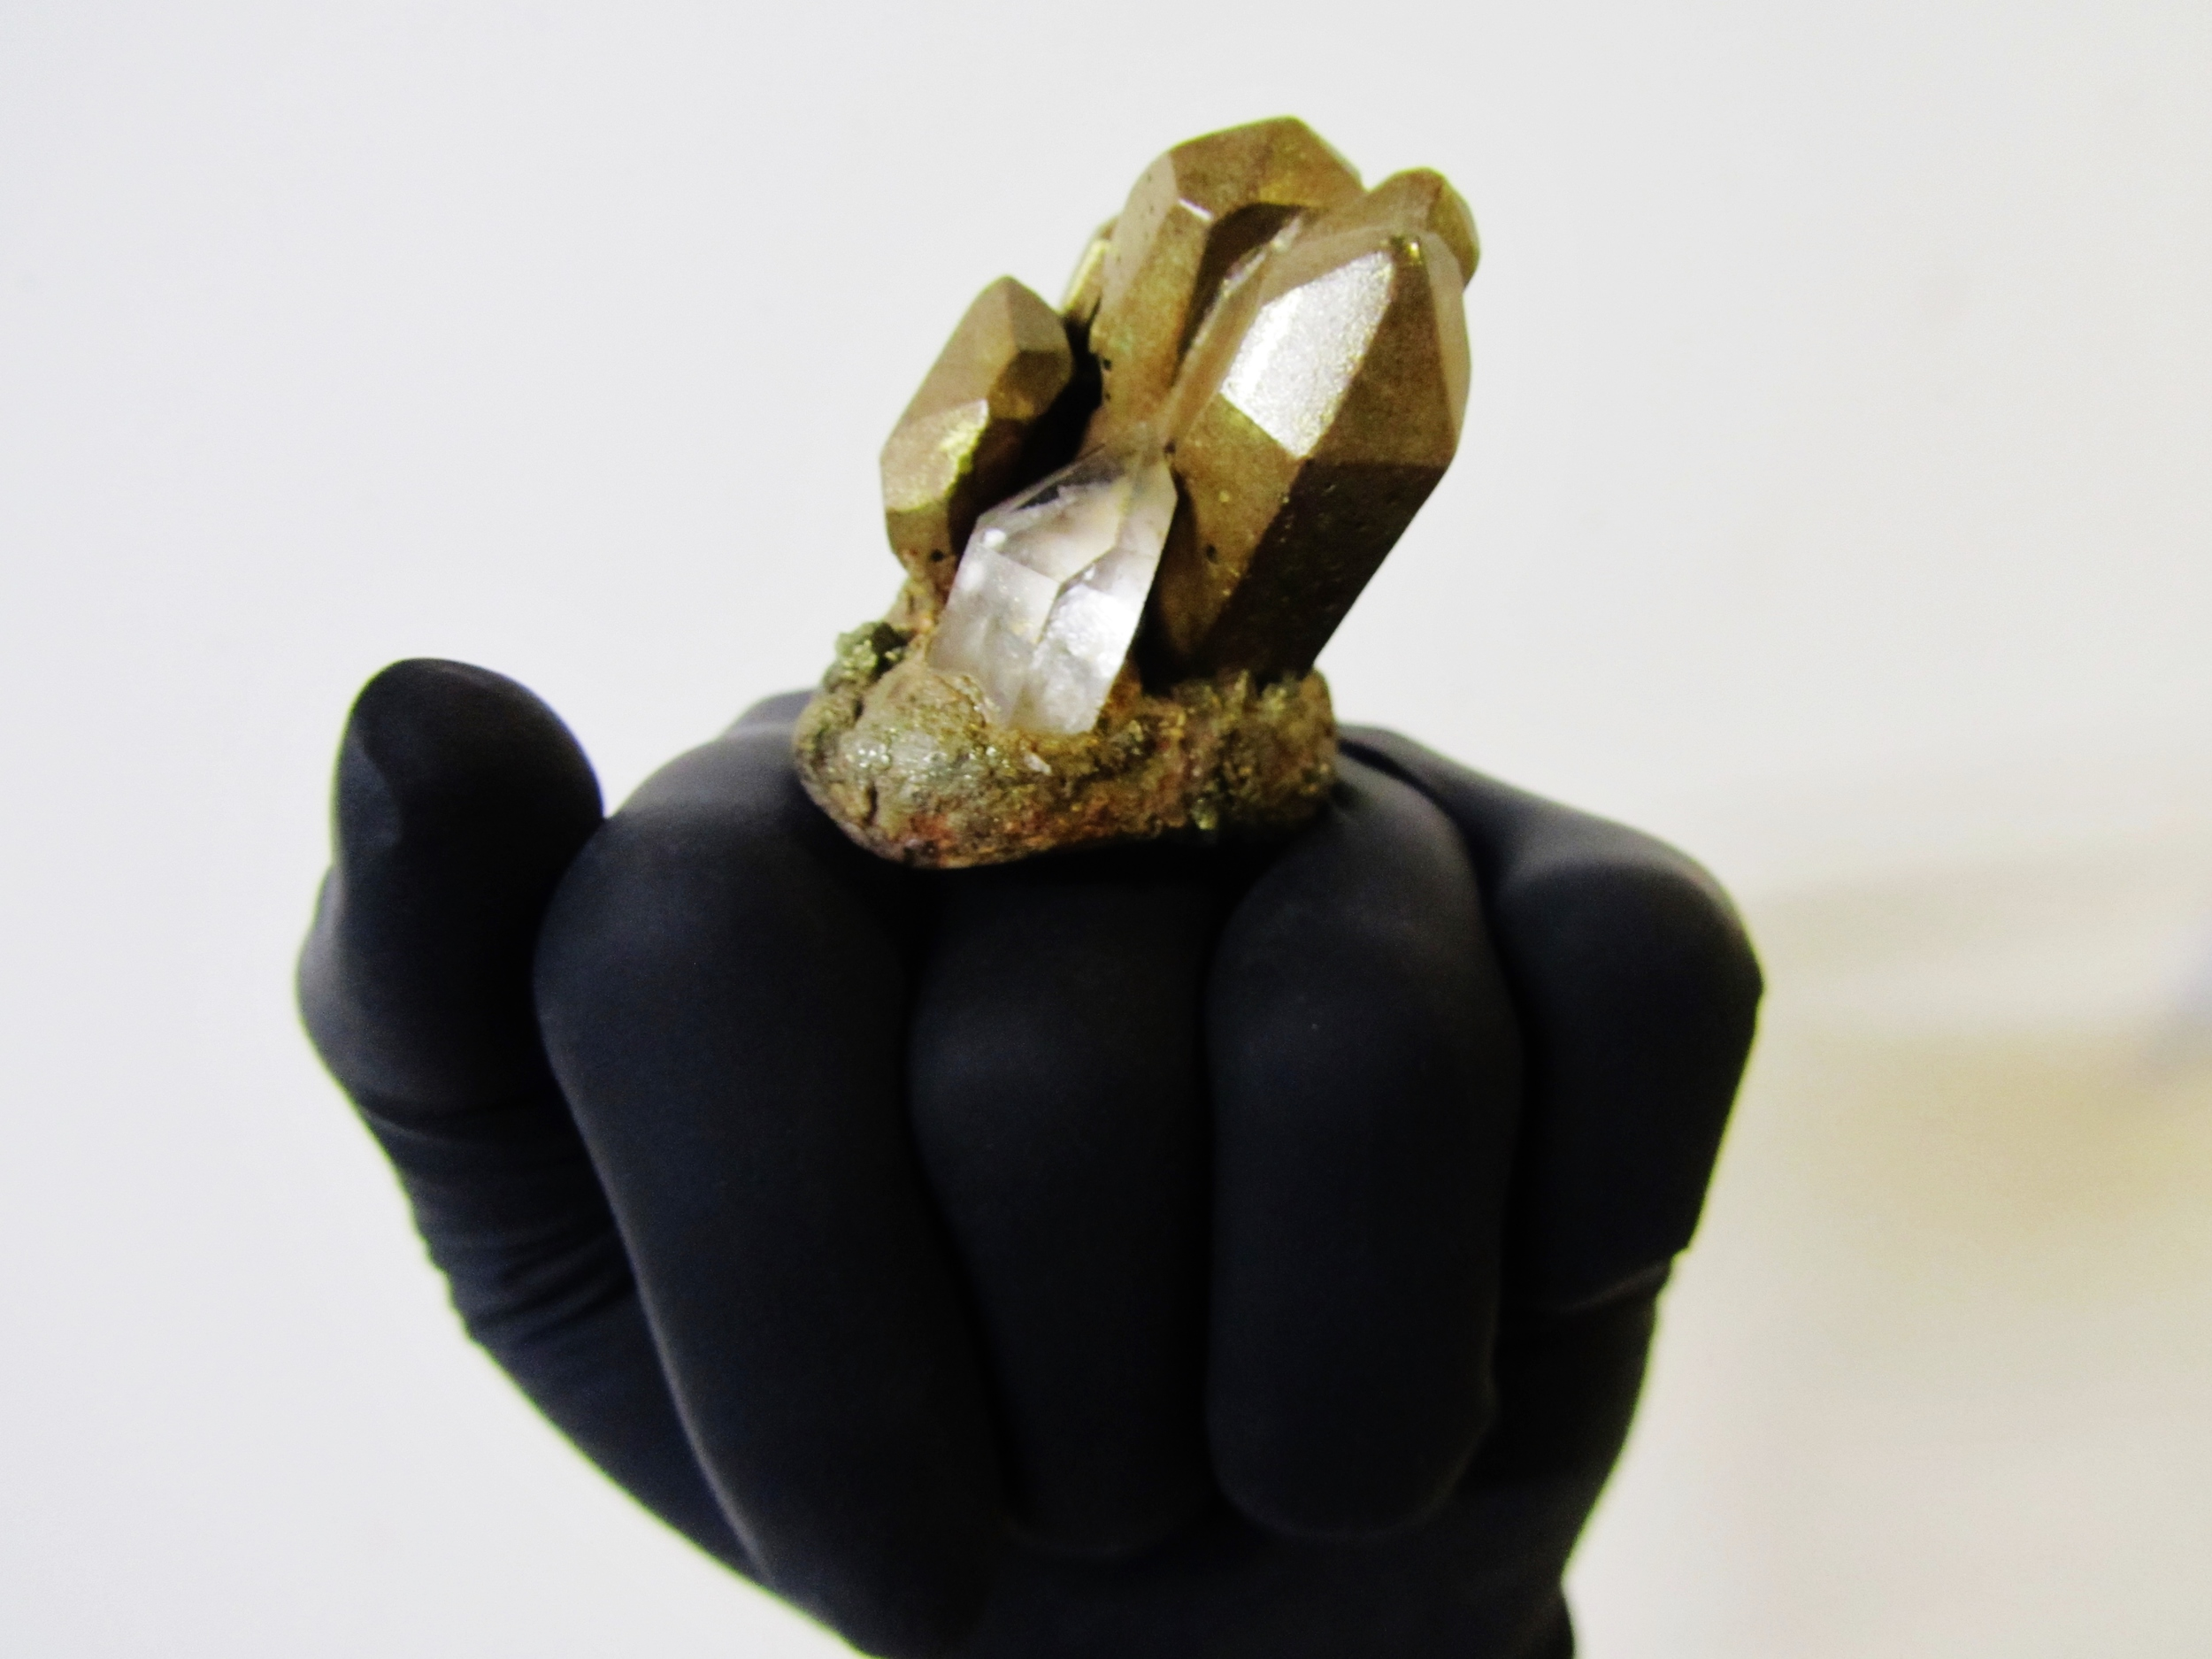 bespoke ring jade mellor crystal black glove.JPG